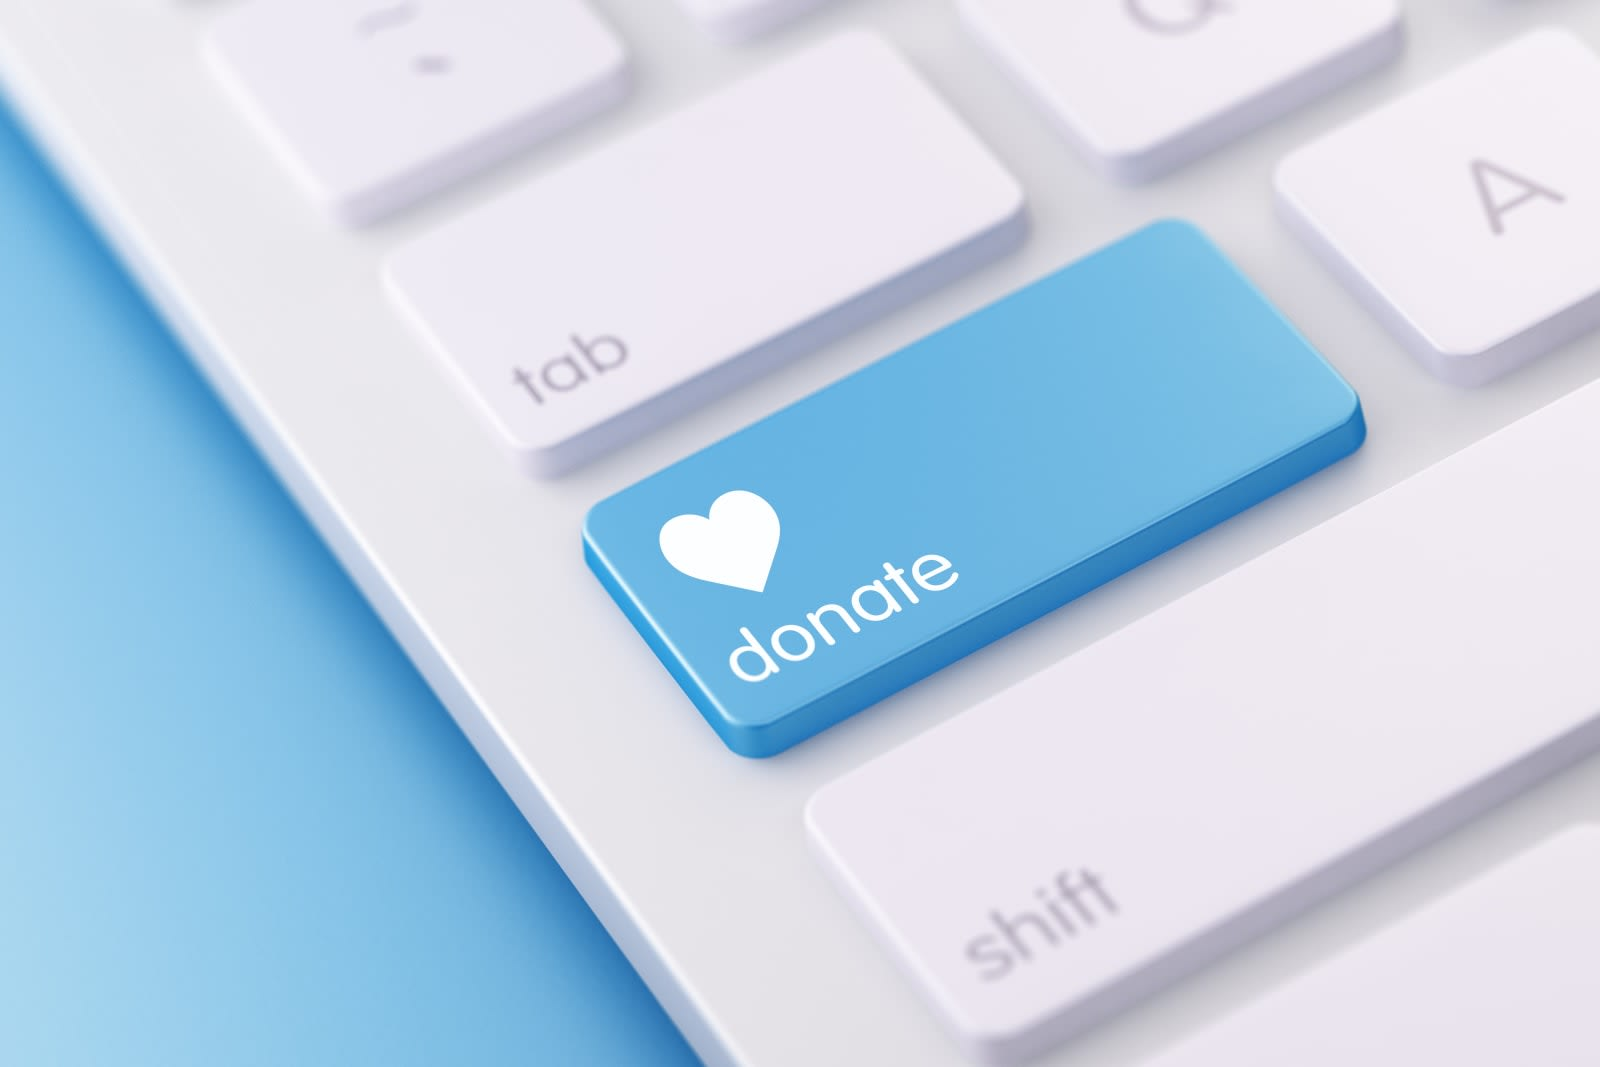 Facebook users have raised over $2 billion for causes